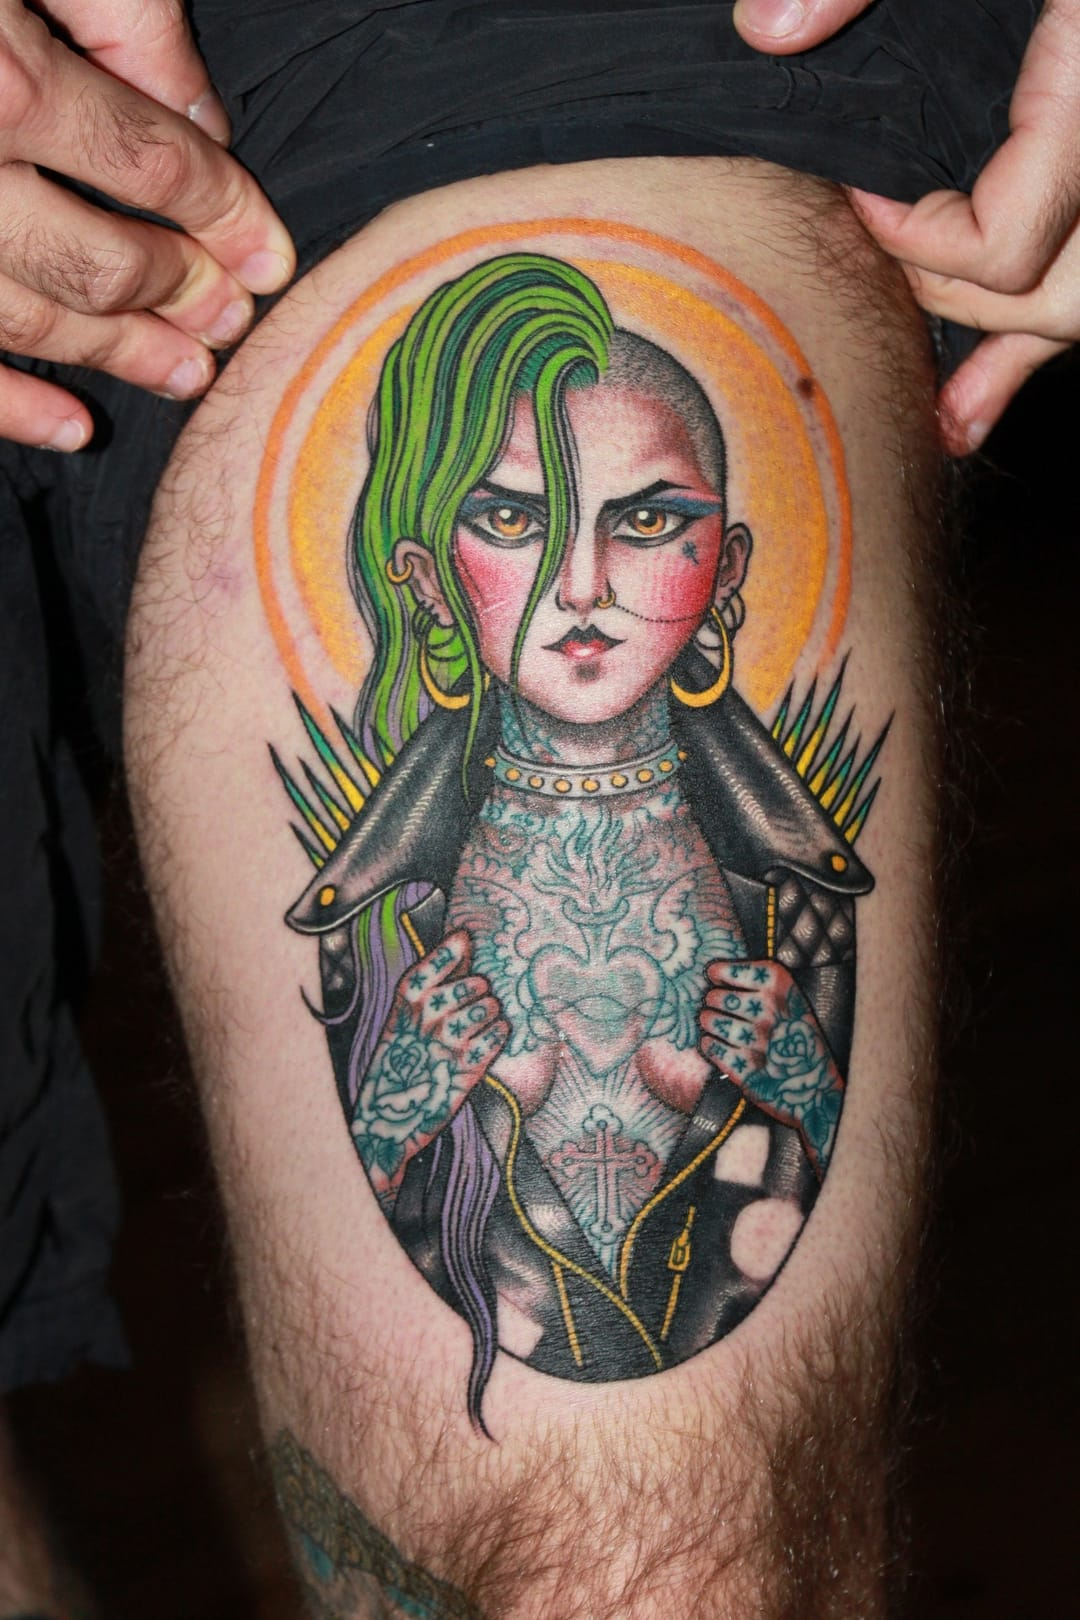 Fabulous punk girl tattoo by Valerie Vargas with so many cool détails!